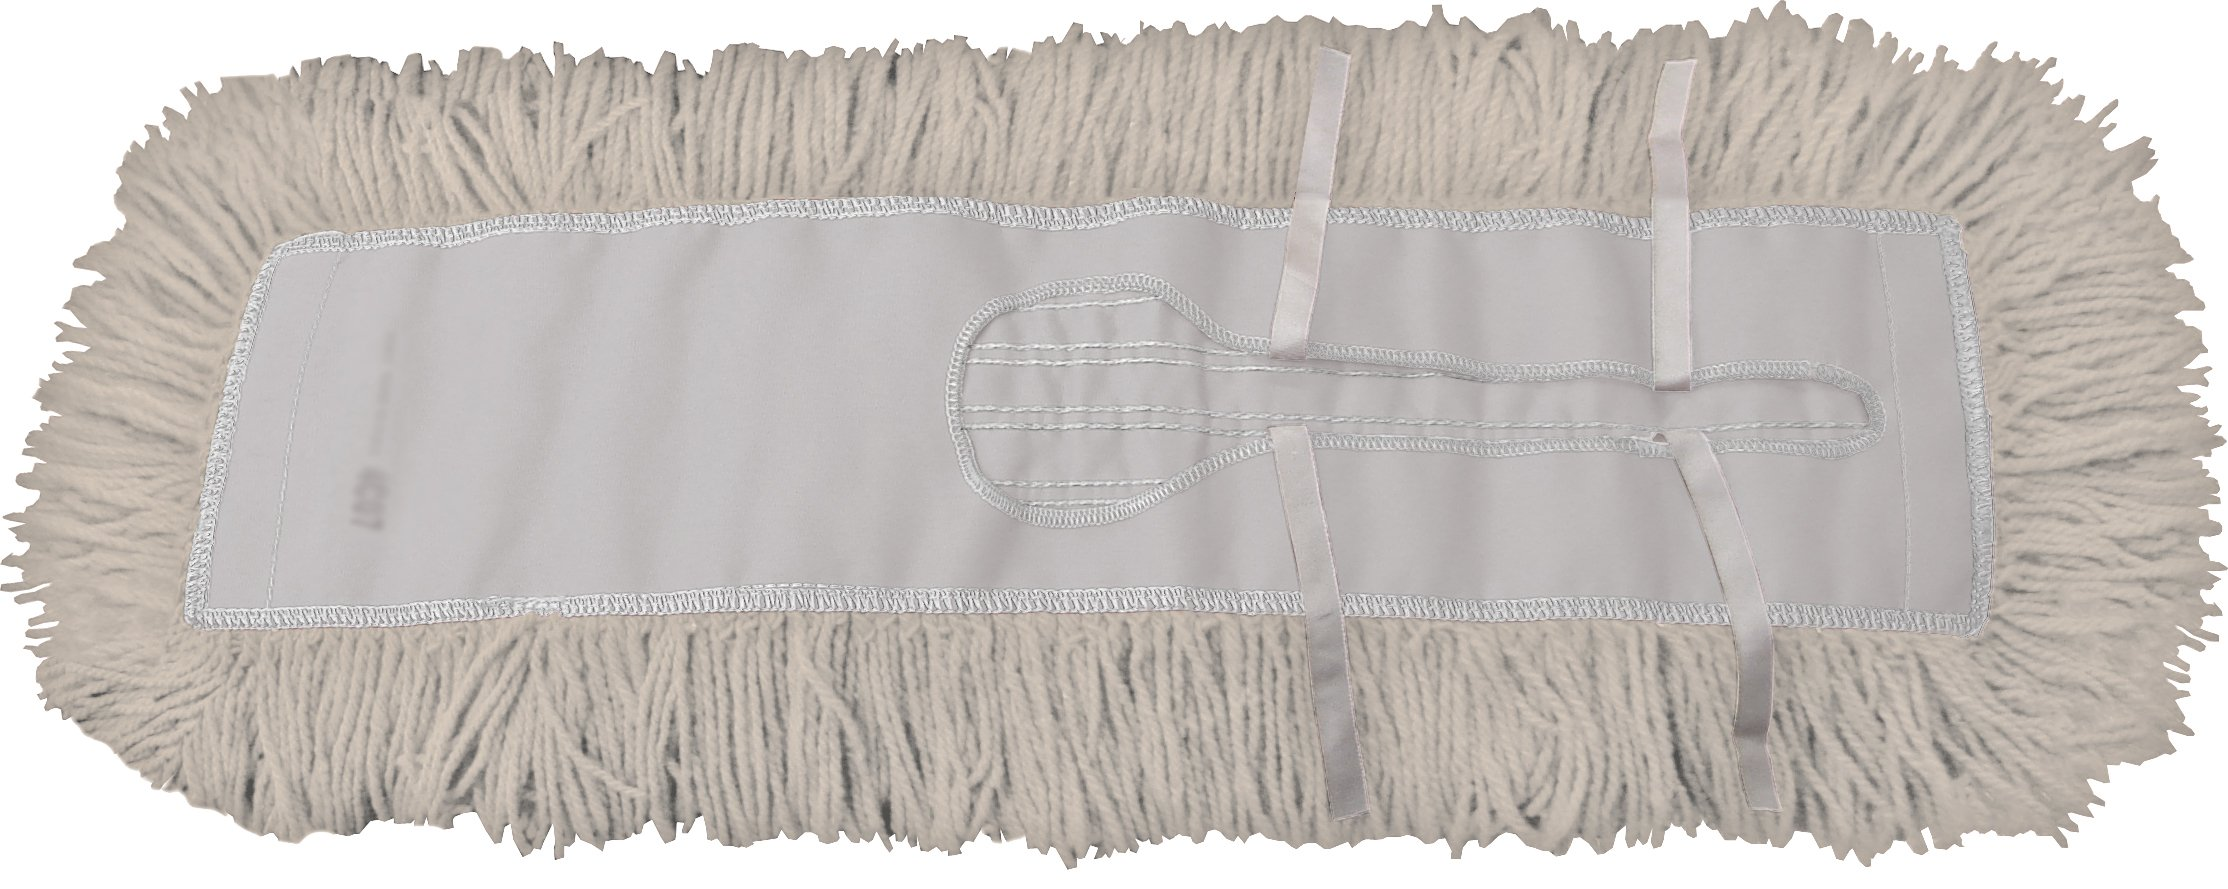 Dust Mop Kit 60'' : (1) 60'' White Industrial Closed-Loop Dust Mop, (1) 60'' Wire Dust Mop Frame & (1) Dust Mop Handle Clip-On Style Wood by Direct Mop Sales, Inc. (Image #2)